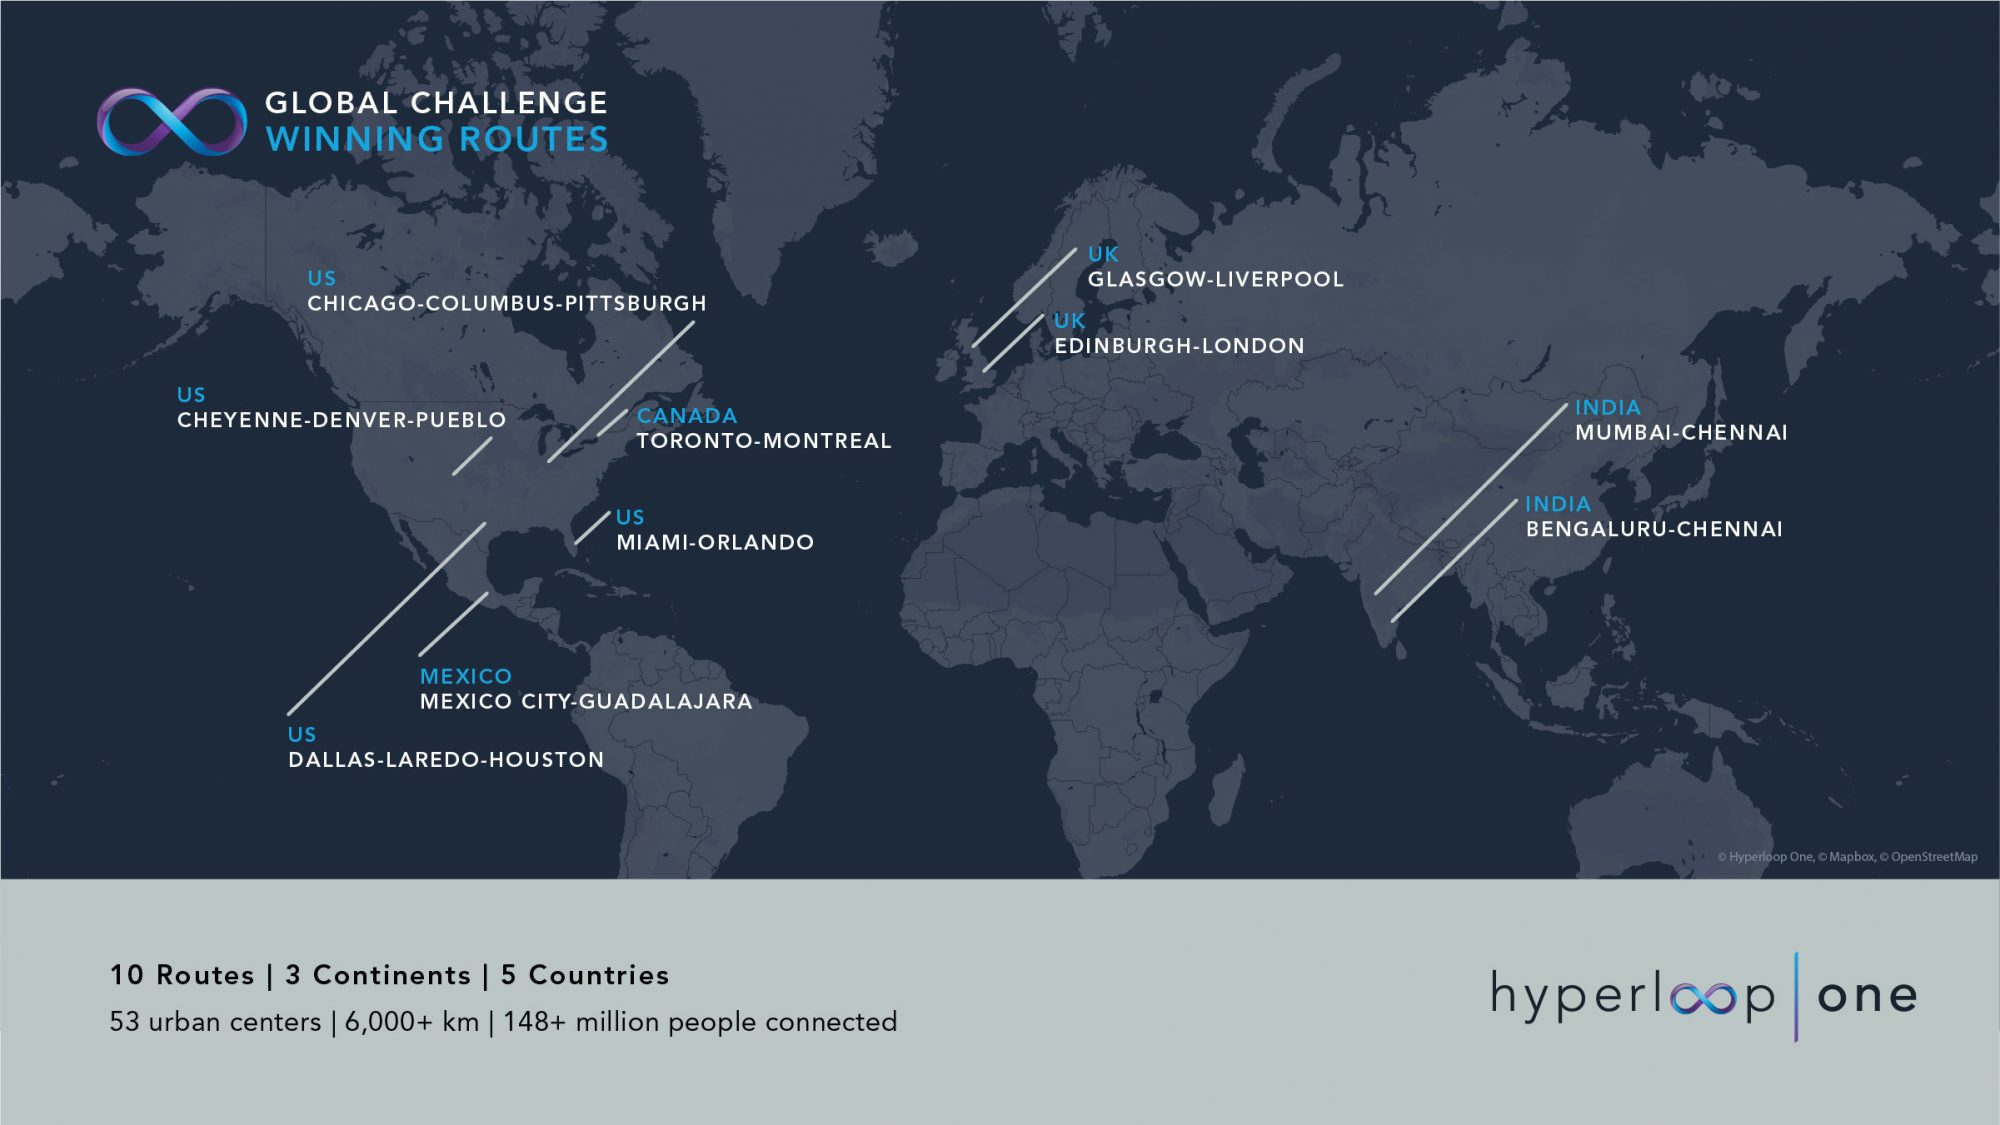 Hyperloop One picks 10 possible hyperloop routes around the world